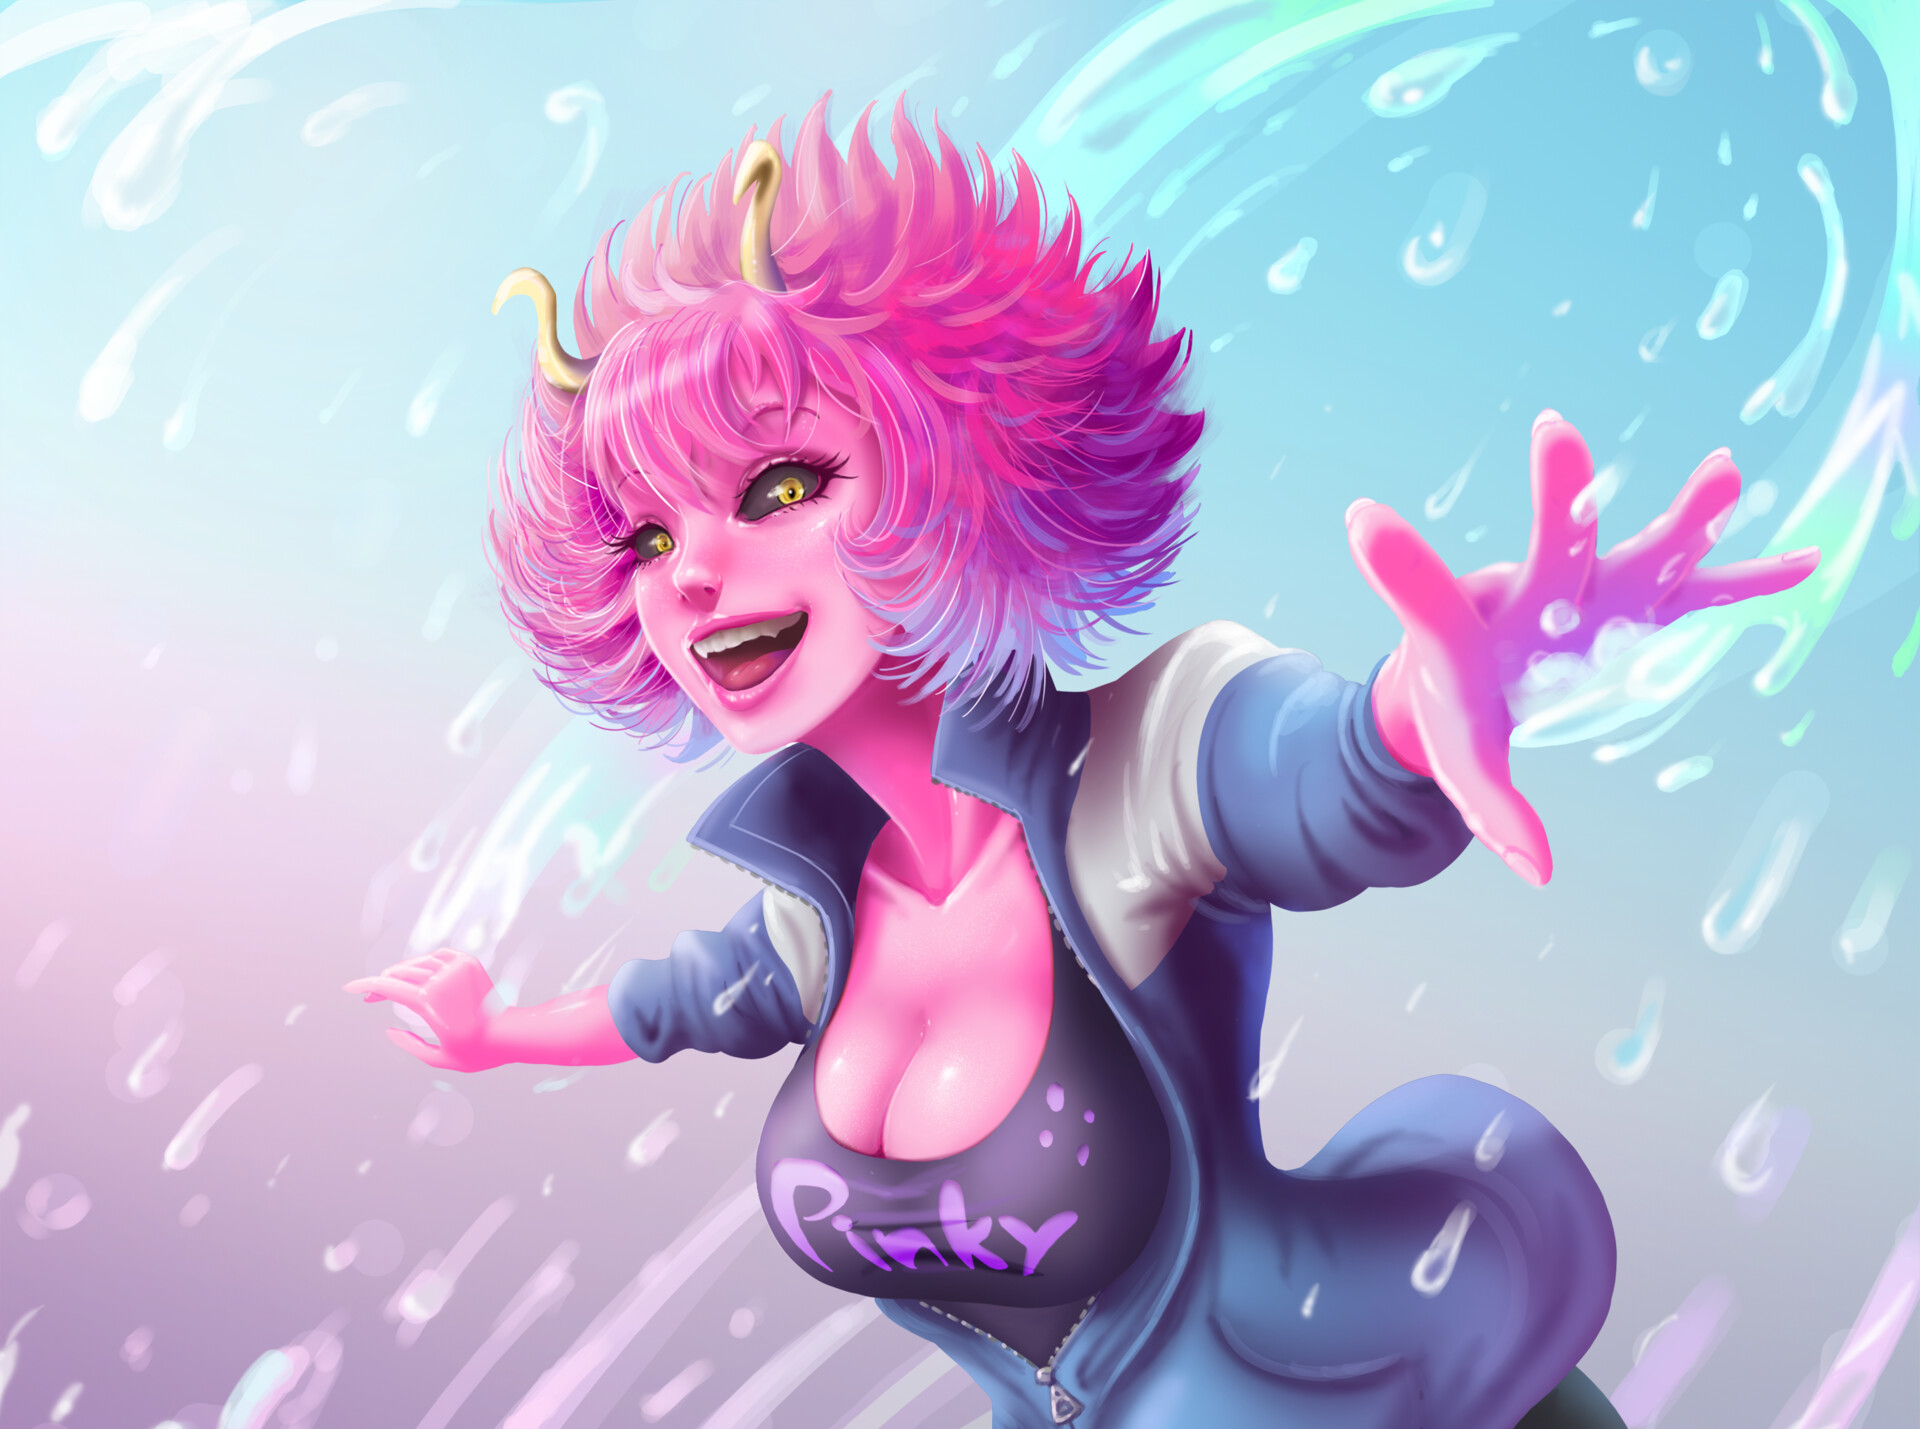 Mina Ashido My Hero Academia Wallpaper Hd Anime 4k Wallpapers